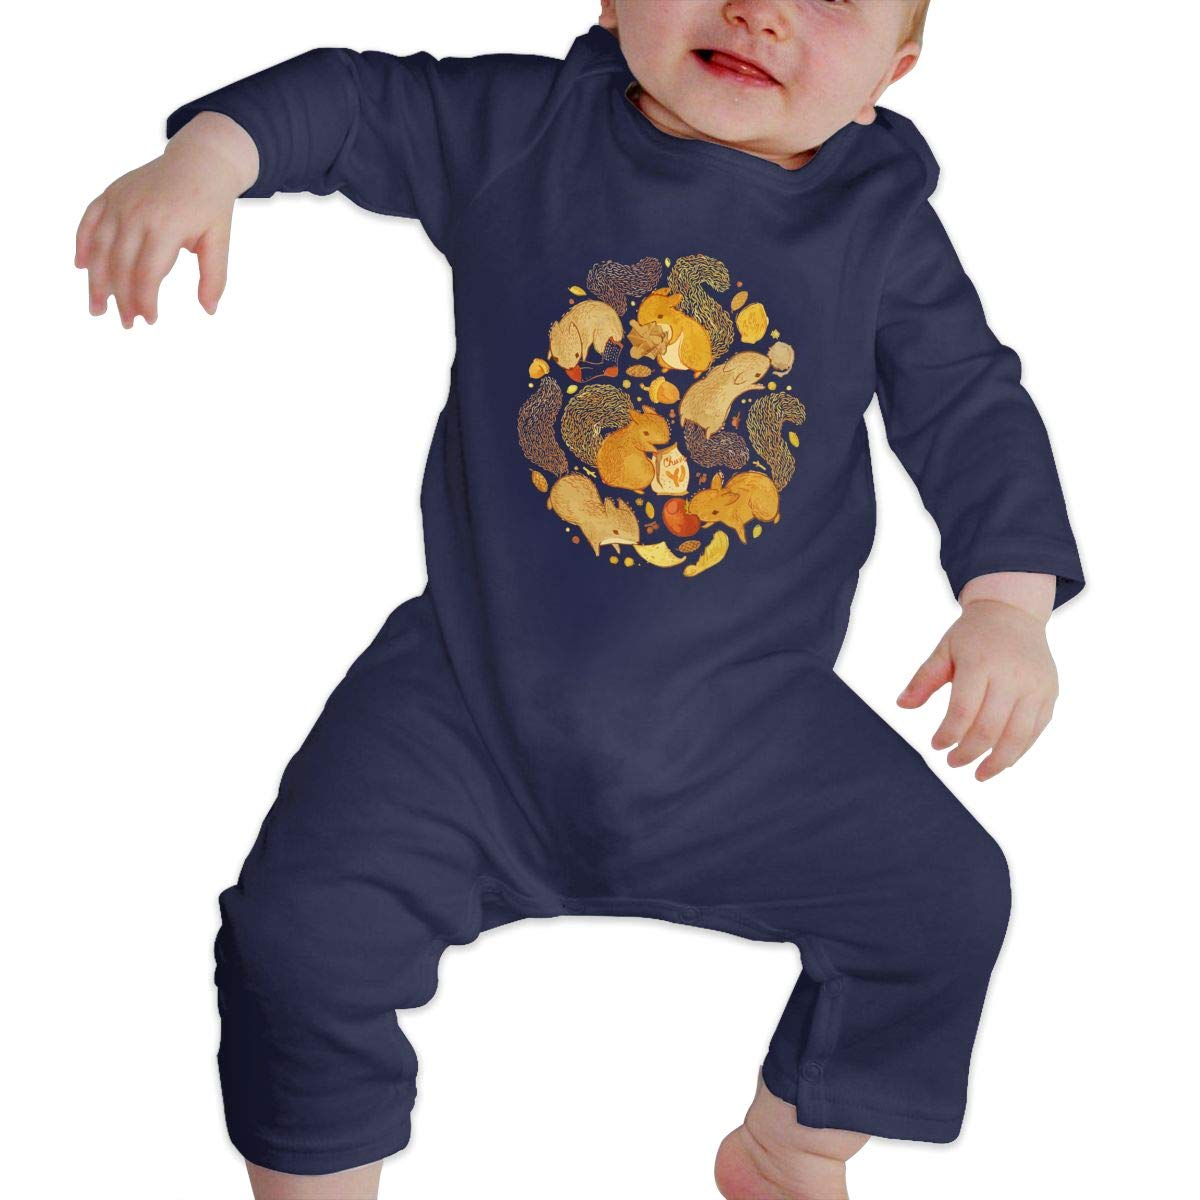 nordic runes Squirrel Baby Onesies Toddler Baby Girl//Boy Unisex Clothes Romper Jumpsuit Bodysuit One Piece